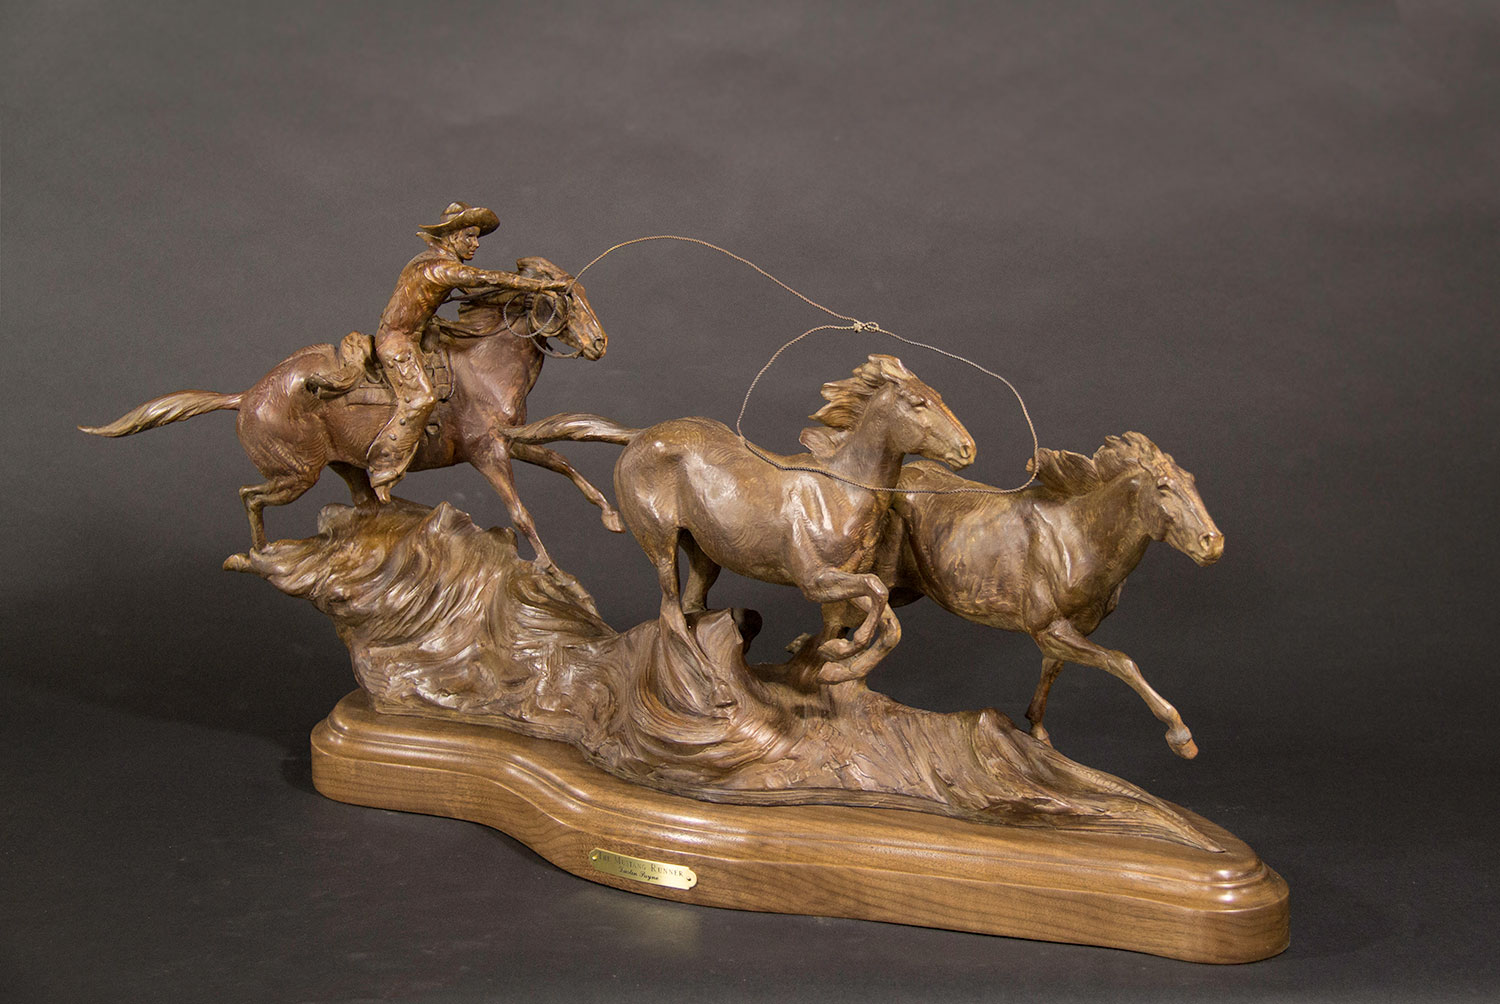 The Mustang Runner, Cowboys on horses, Cowboy Art